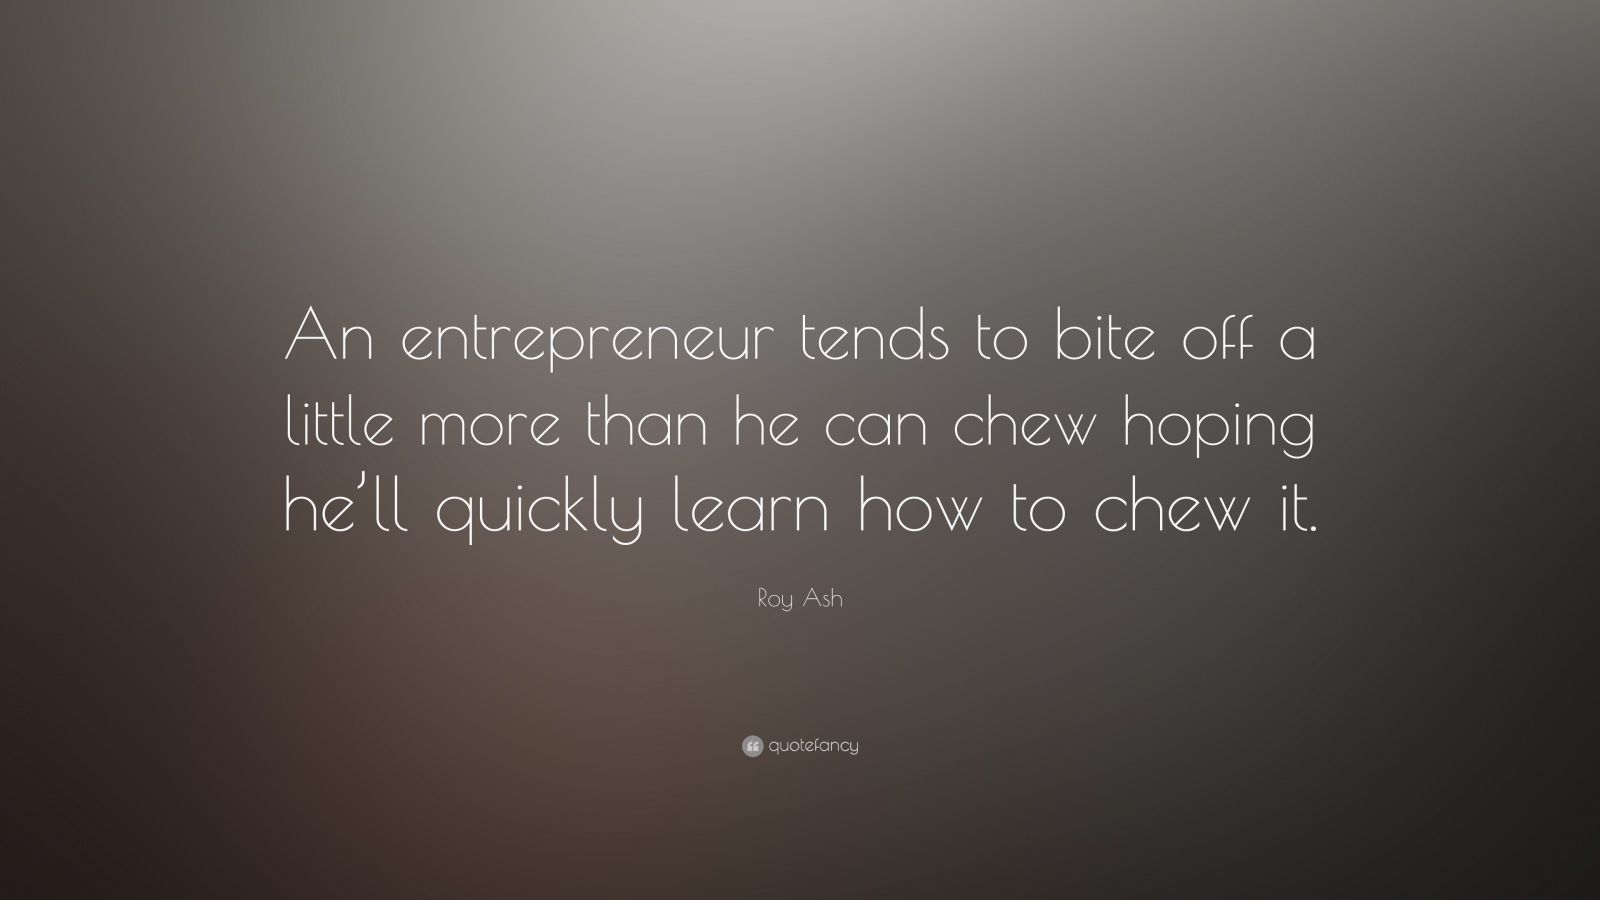 Steve Jobs Motivational Quotes Wallpaper Roy Ash Quote An Entrepreneur Tends To Bite Off A Little